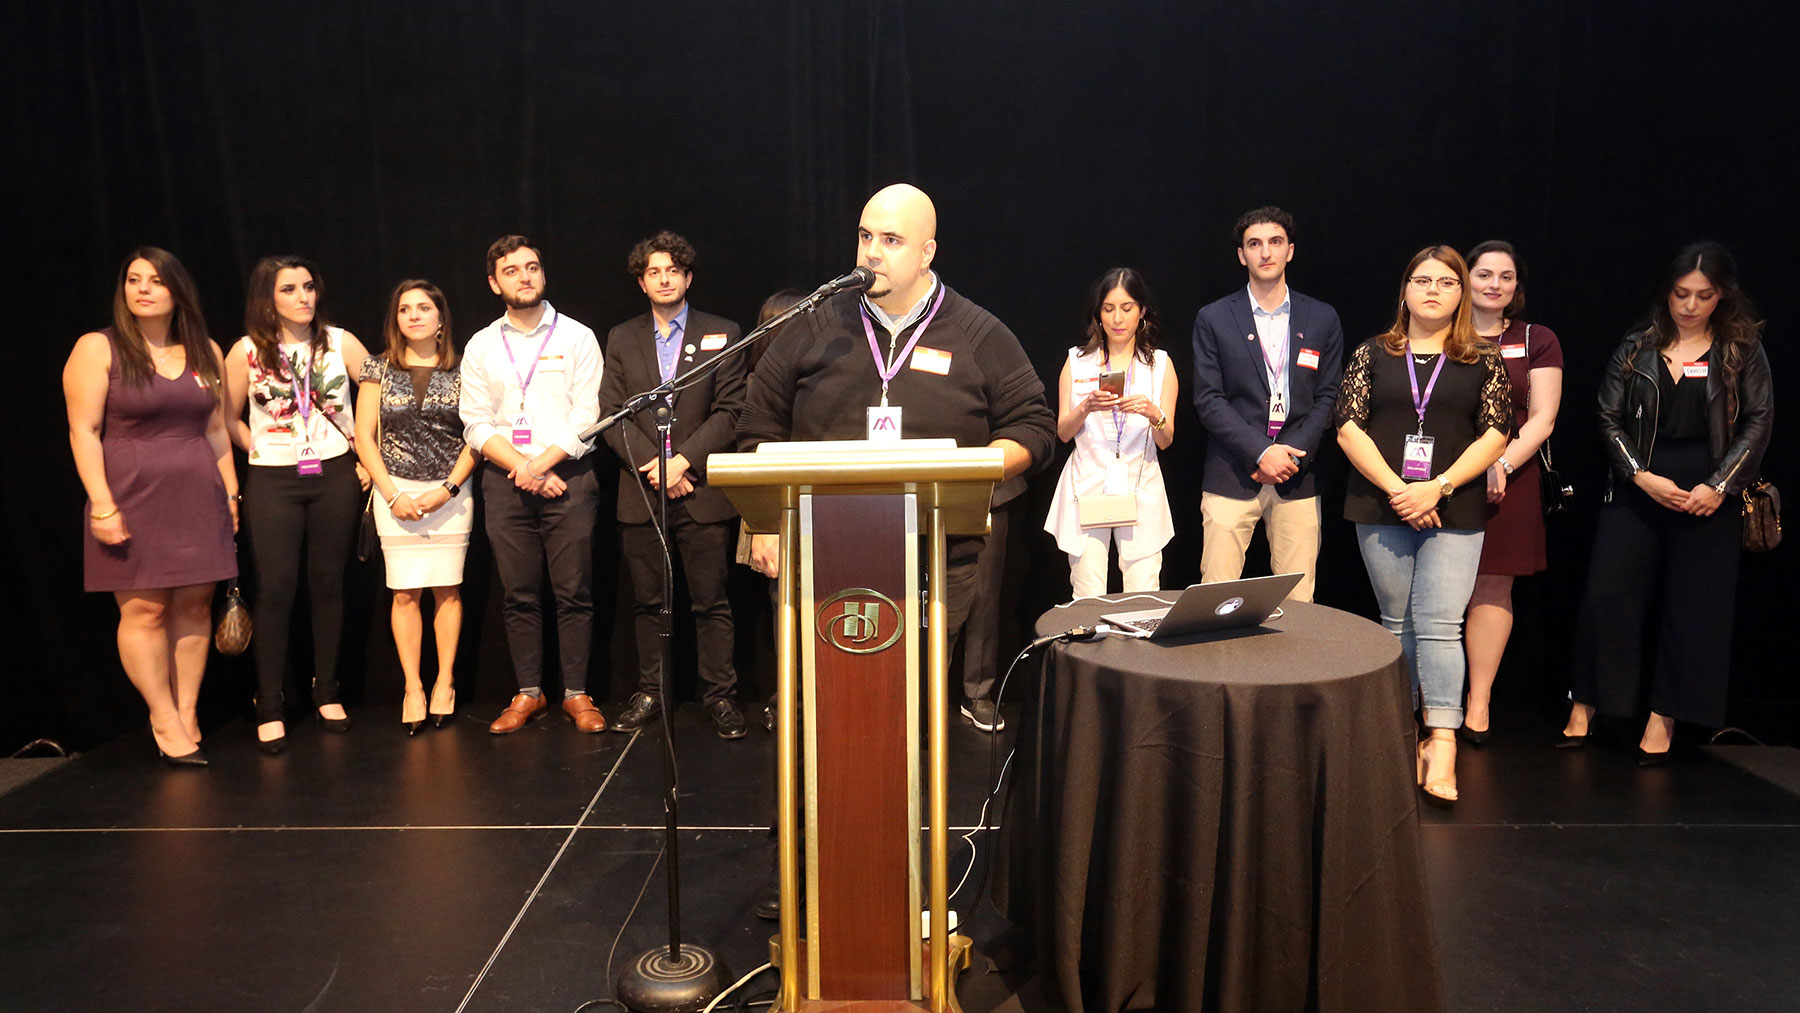 Philip Hovanessian of the Armenian Professional Network Los Angeles Chapter Welcoming Capacity Crowd at AYP Summer Mixer